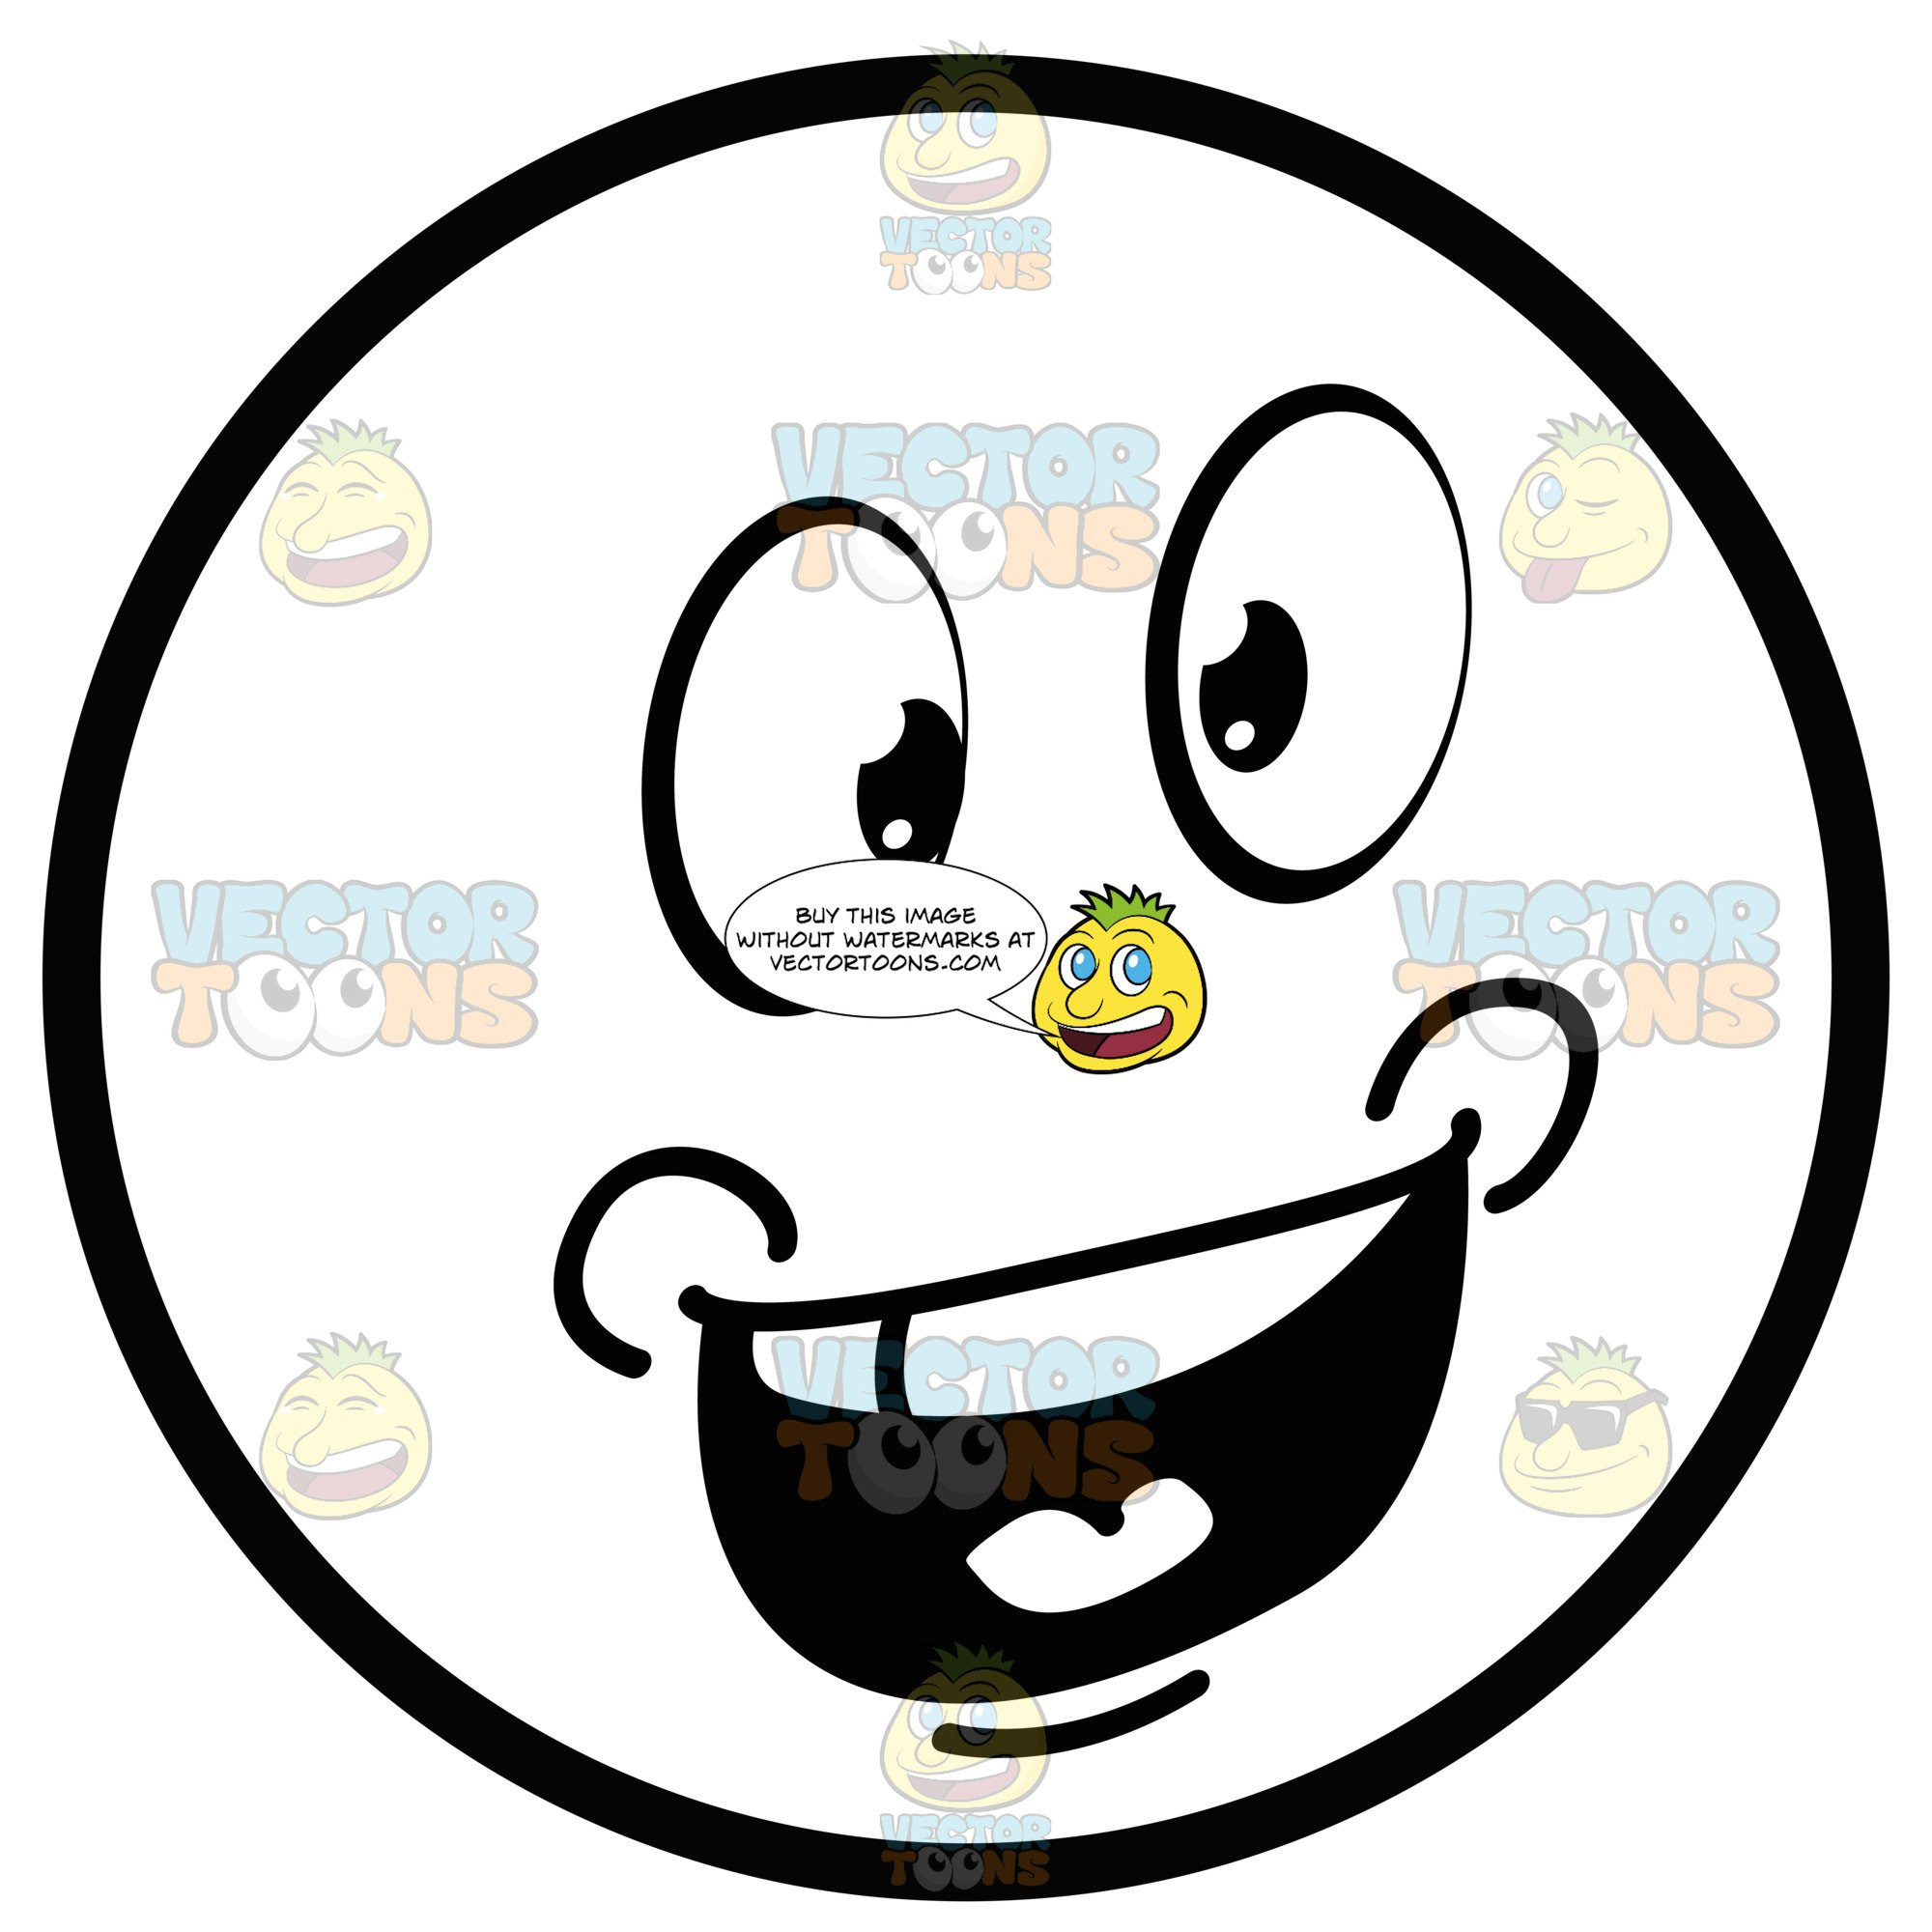 Talking Large Eyed Black And White Smiley Face Emoticon With Chubby Cheeks.